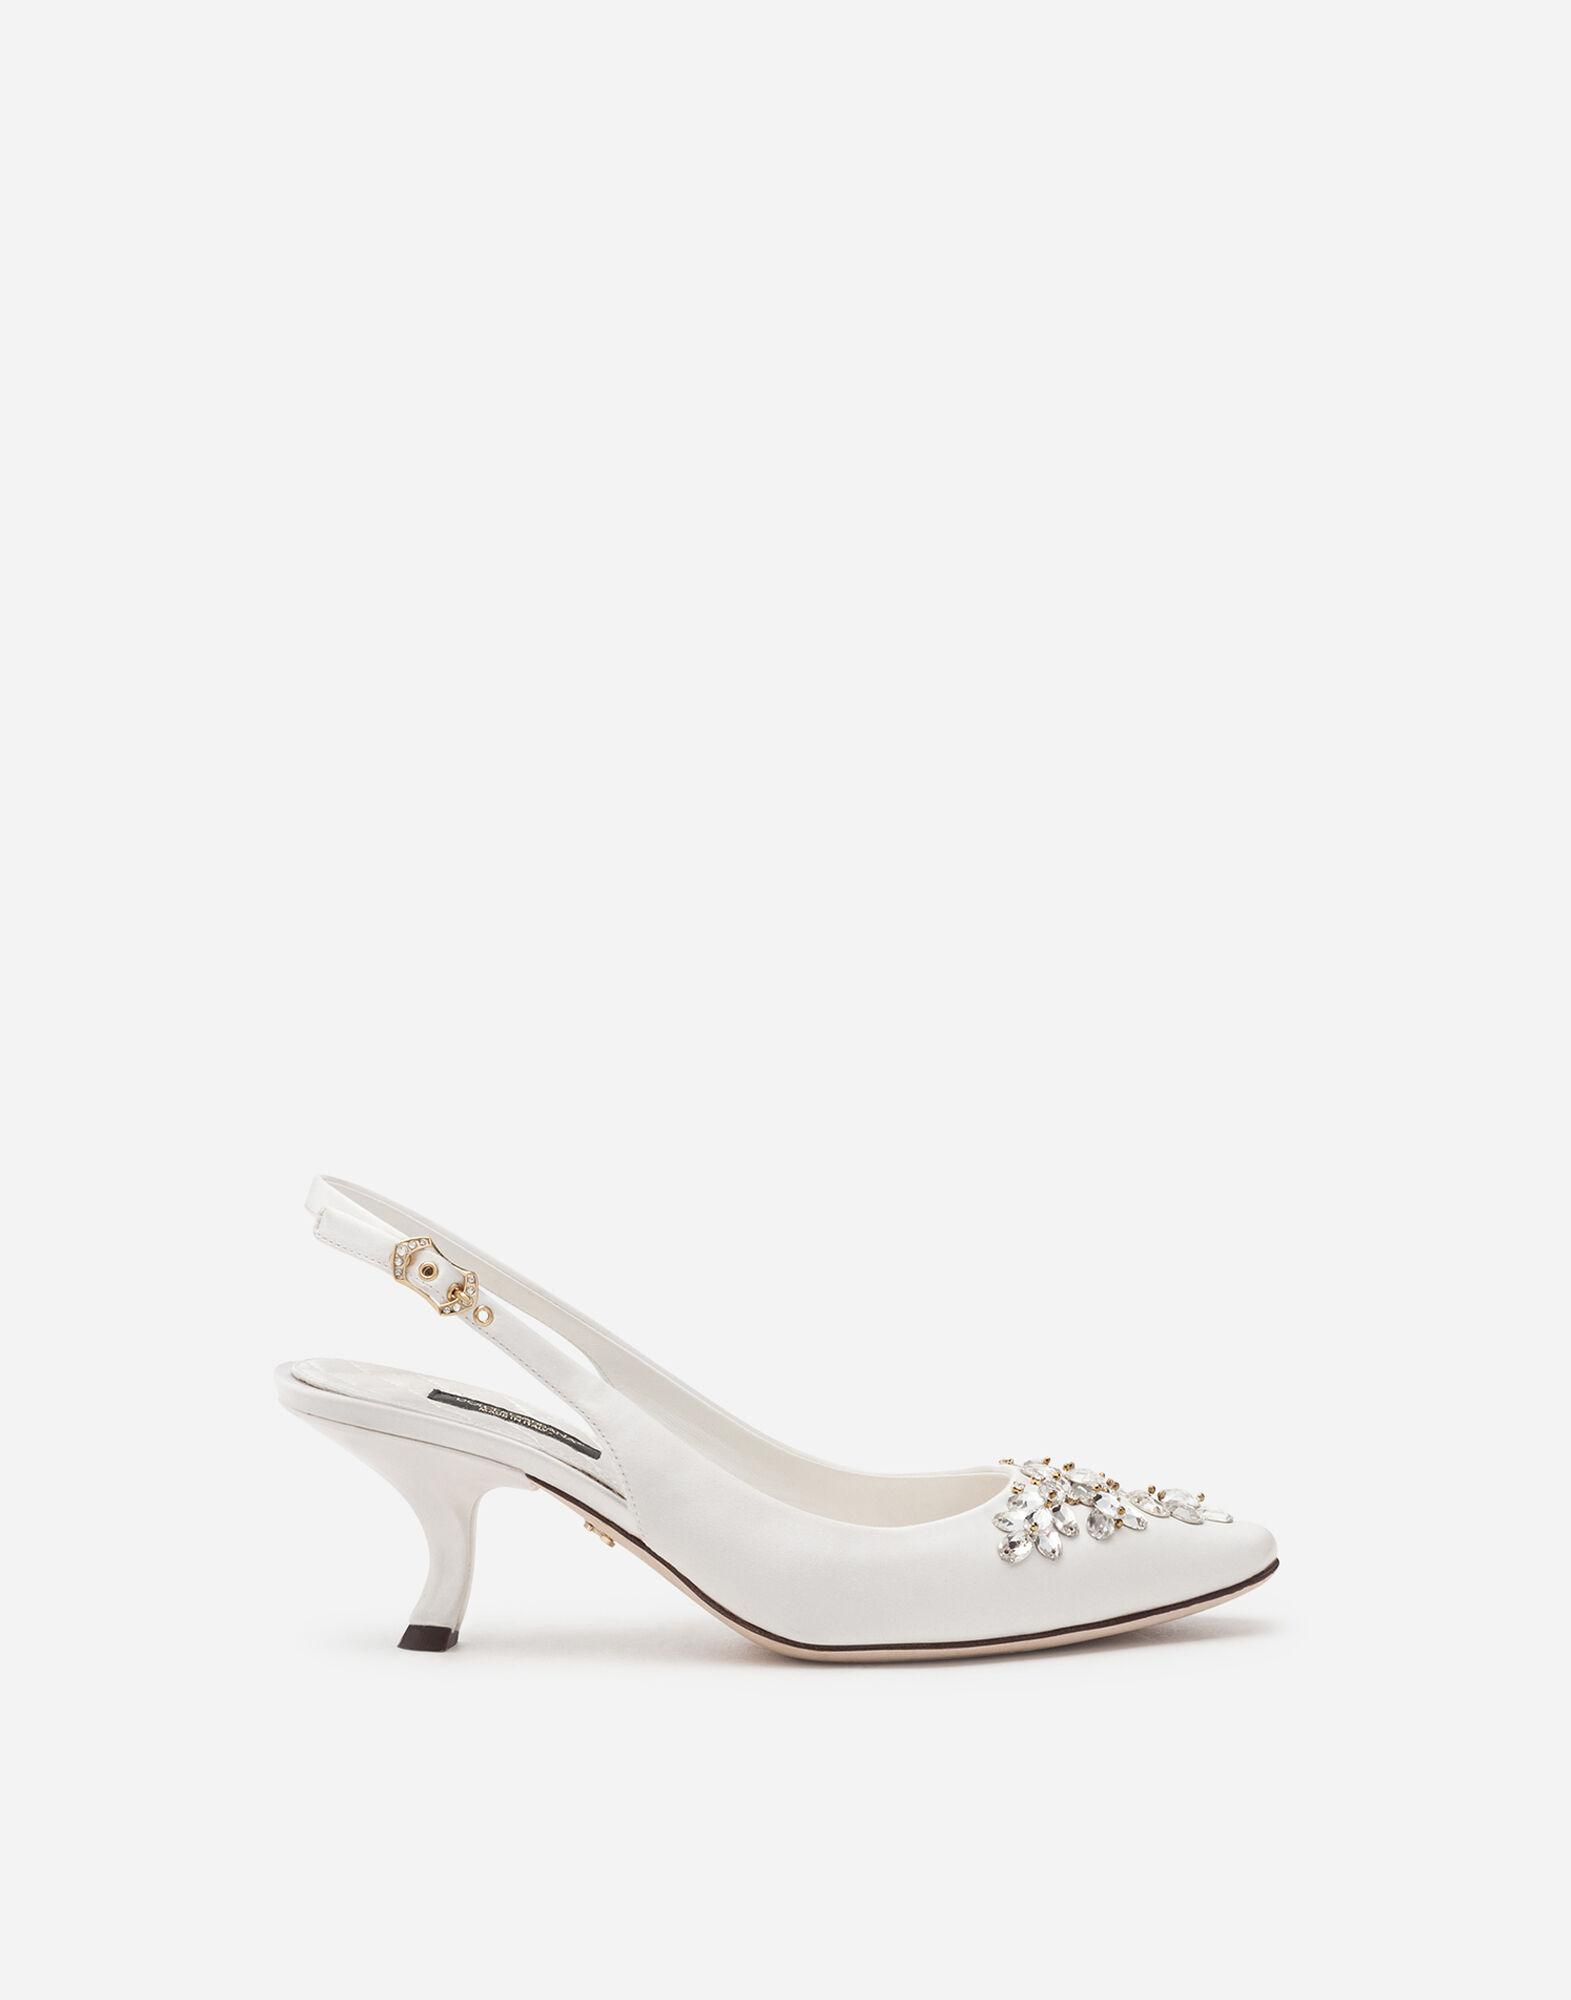 Satin sling back with bejeweled embroidery